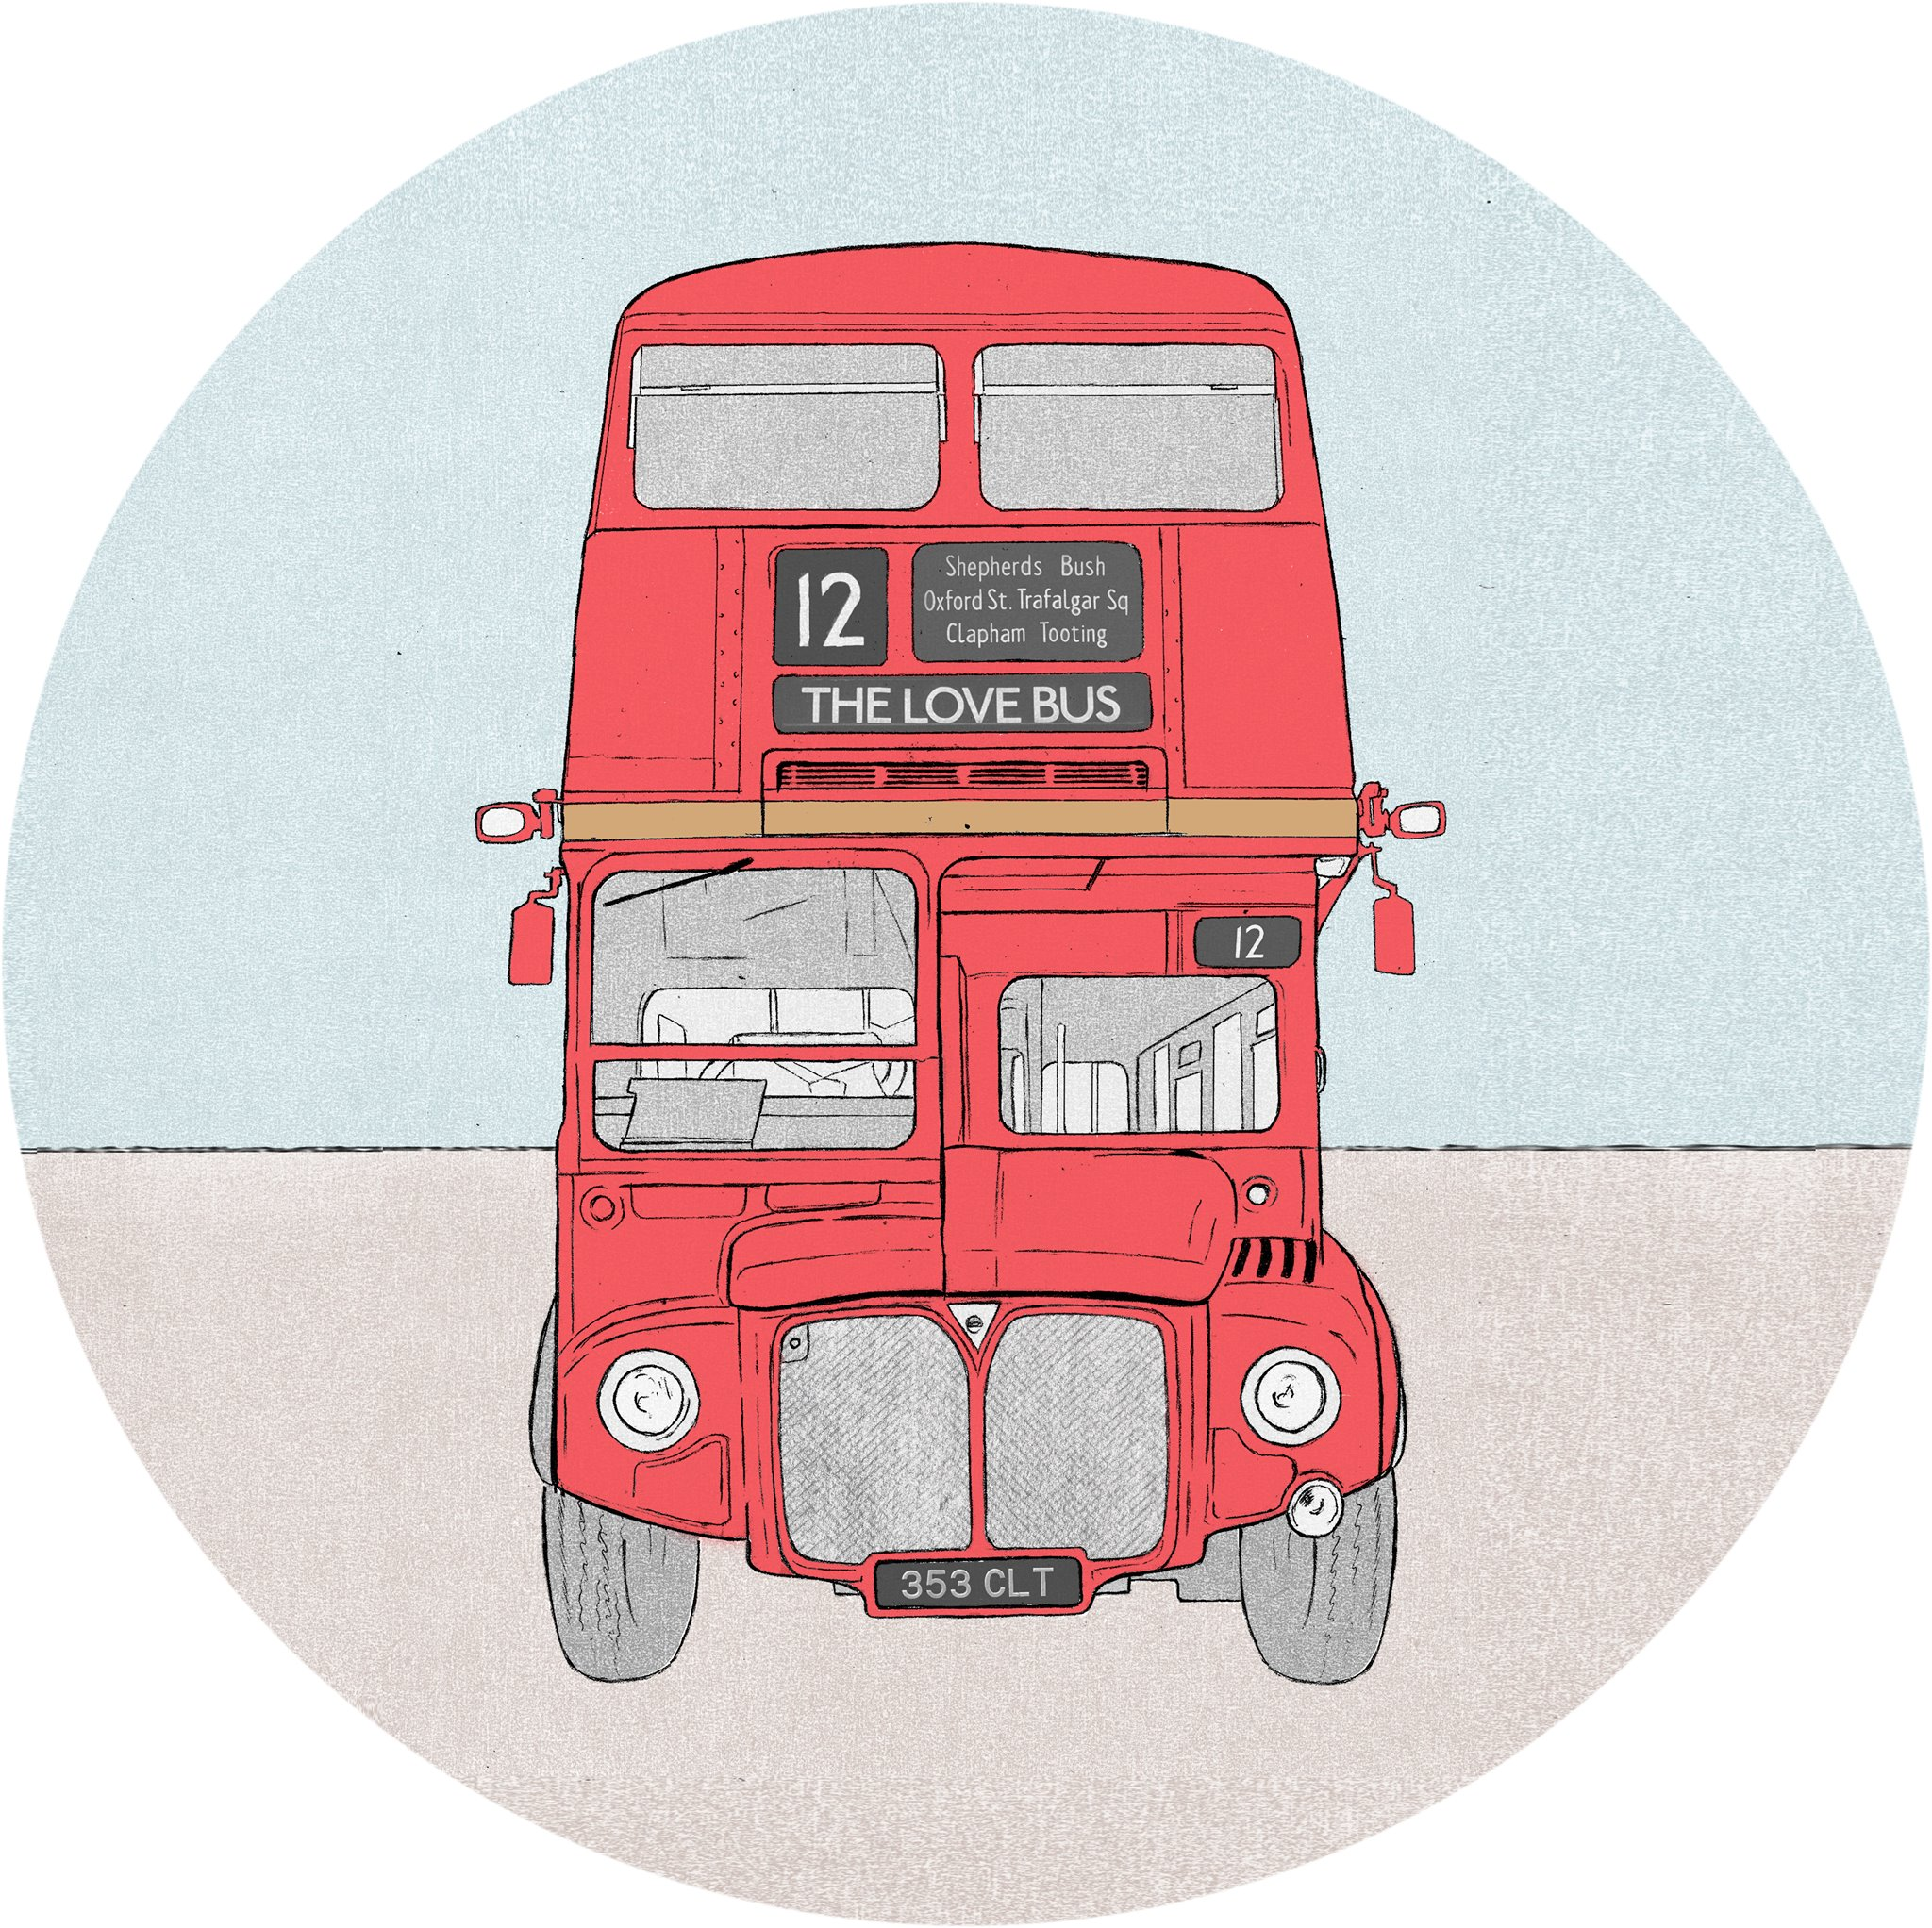 The Red Bus/Love Bus